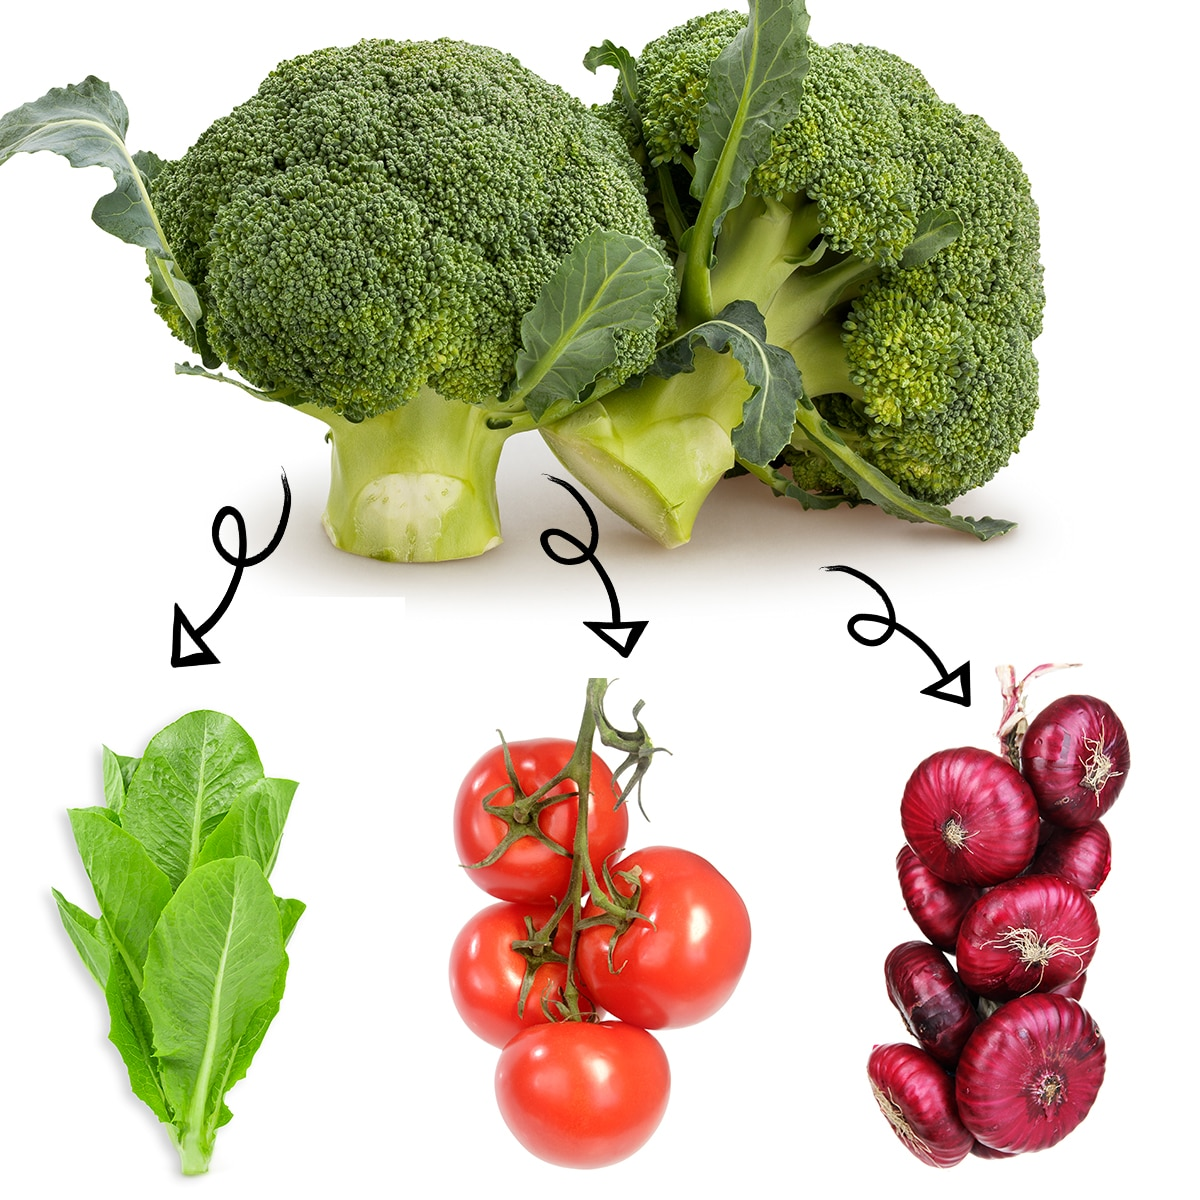 Bright white graphic of heads of broccoli with arrows linking it to lettuce leaves, fresh ripe tomatoes on the vine, and a bundle of red onions.